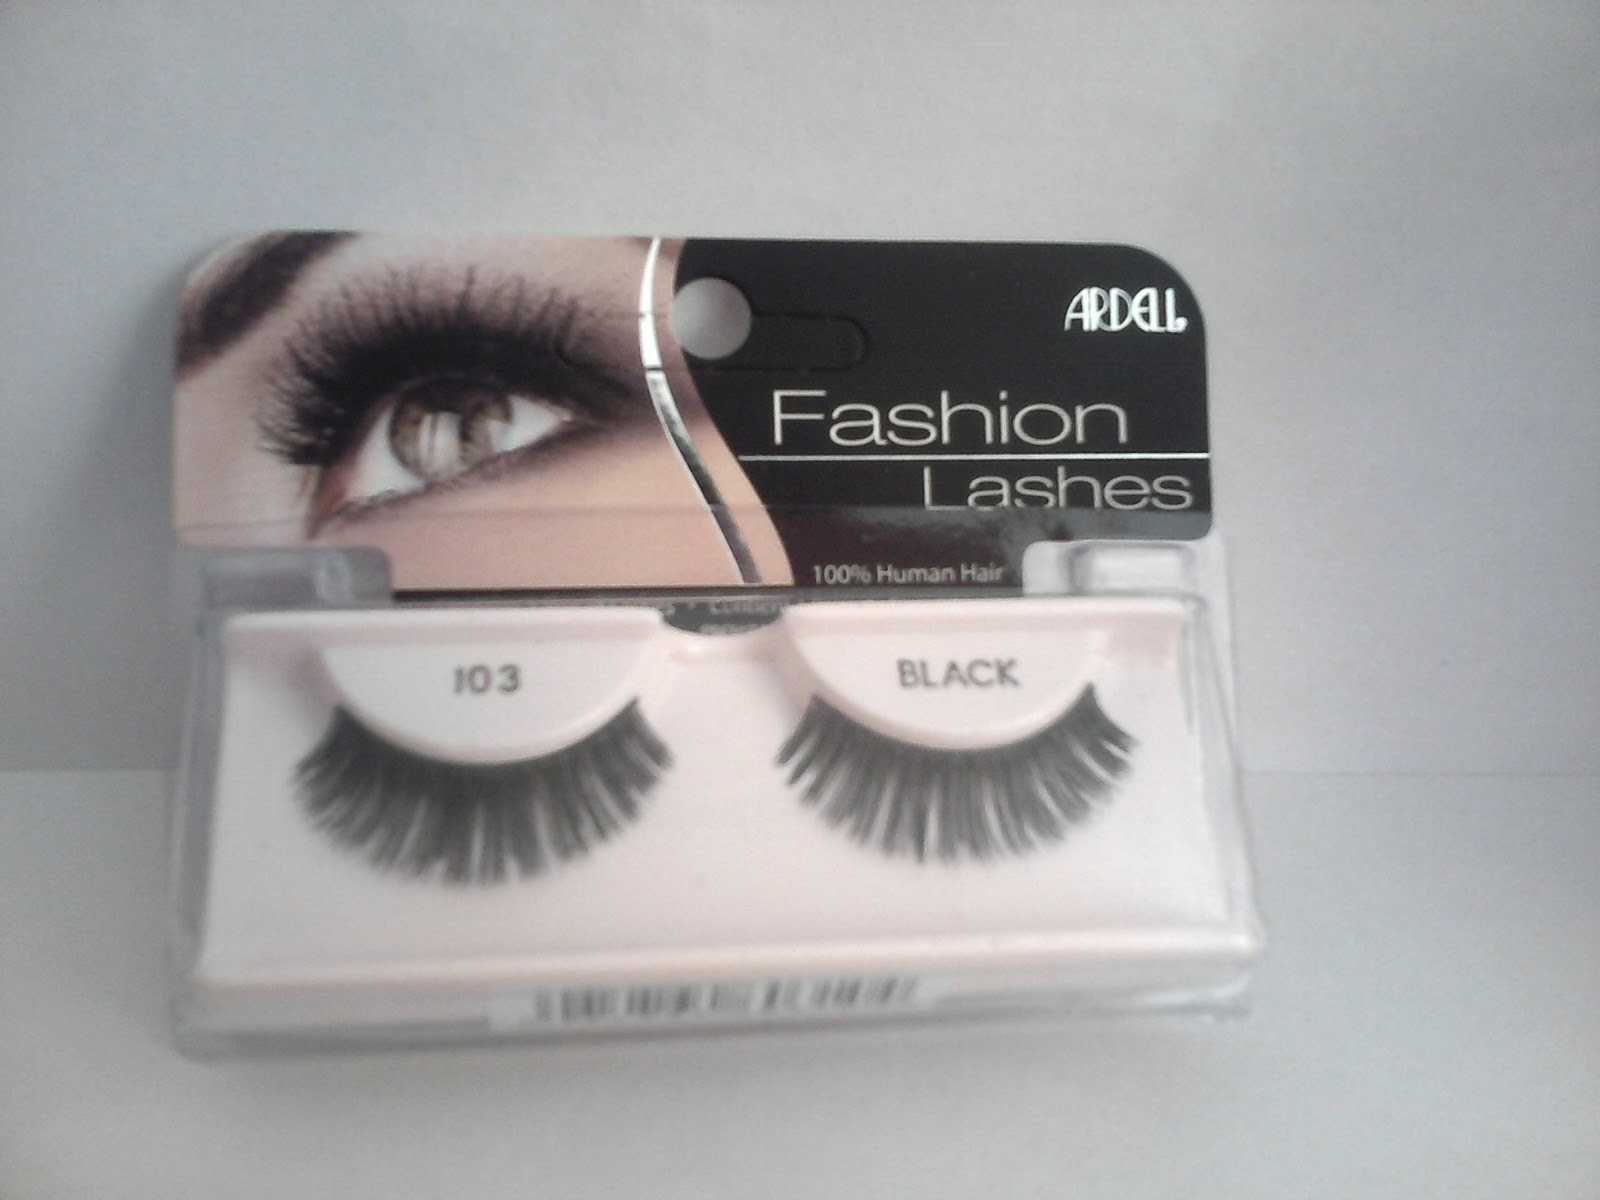 b0518e00ab5 DeyiMizu: Review: False Lashes from Madame Madeline